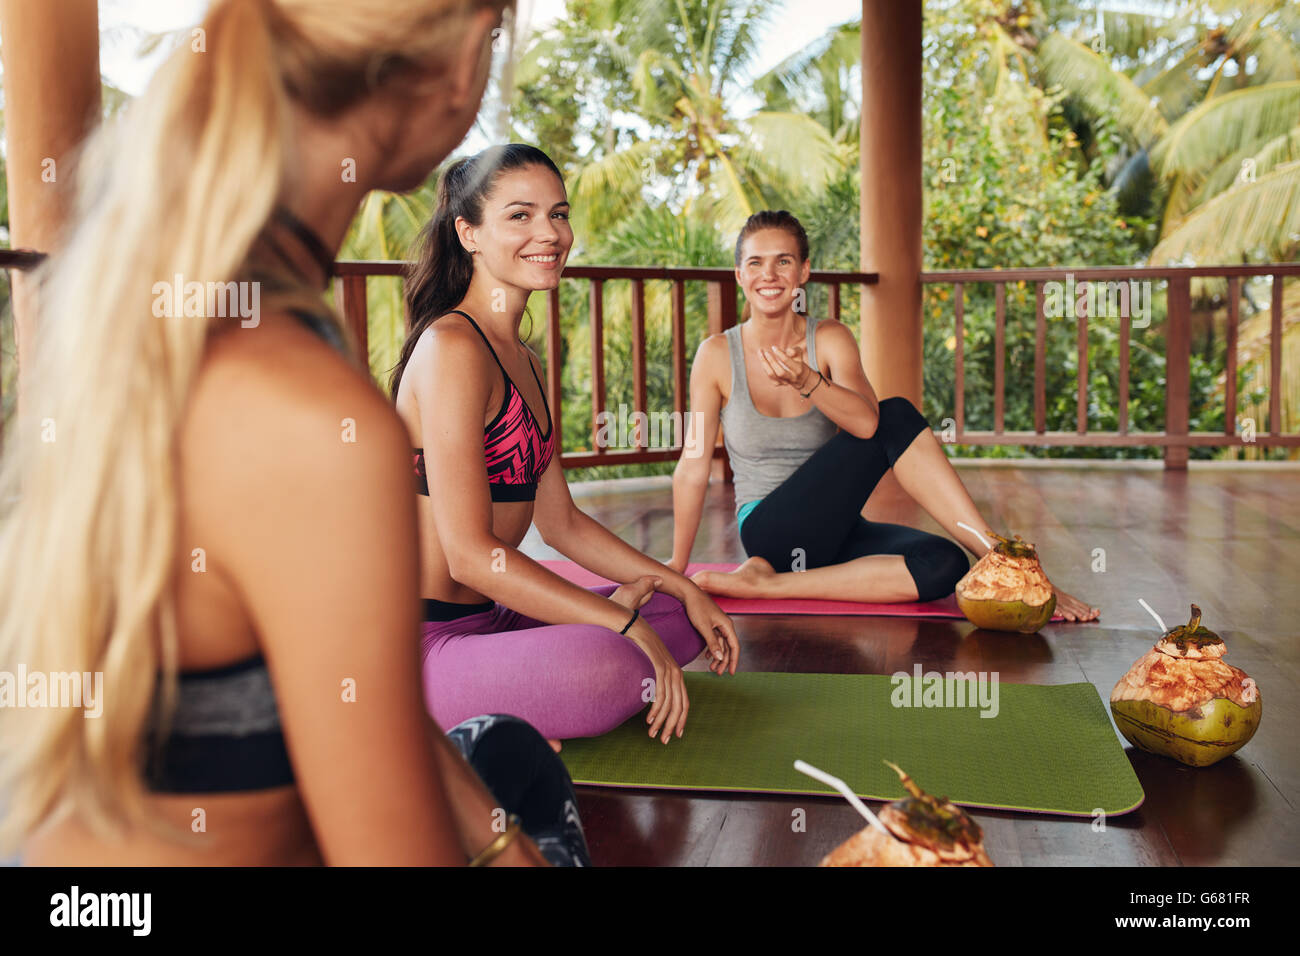 Group of women relaxing after yoga class. Three young women relaxing with coconut juice and talking after yoga session. - Stock Image